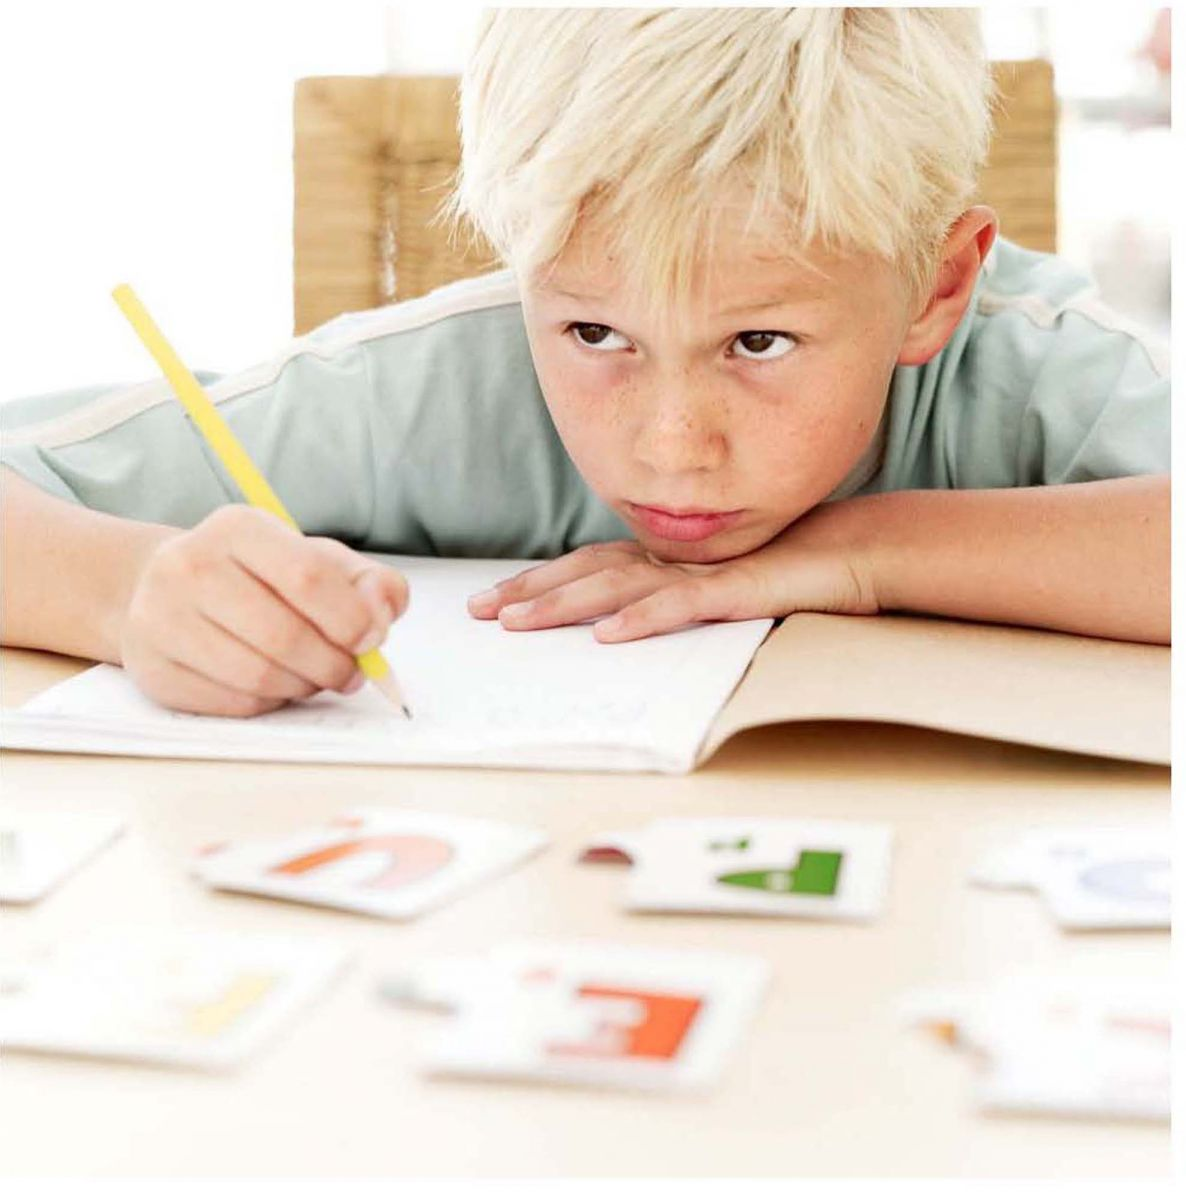 Helping Children With Homework - Parent Tips for Teaching - WebMD